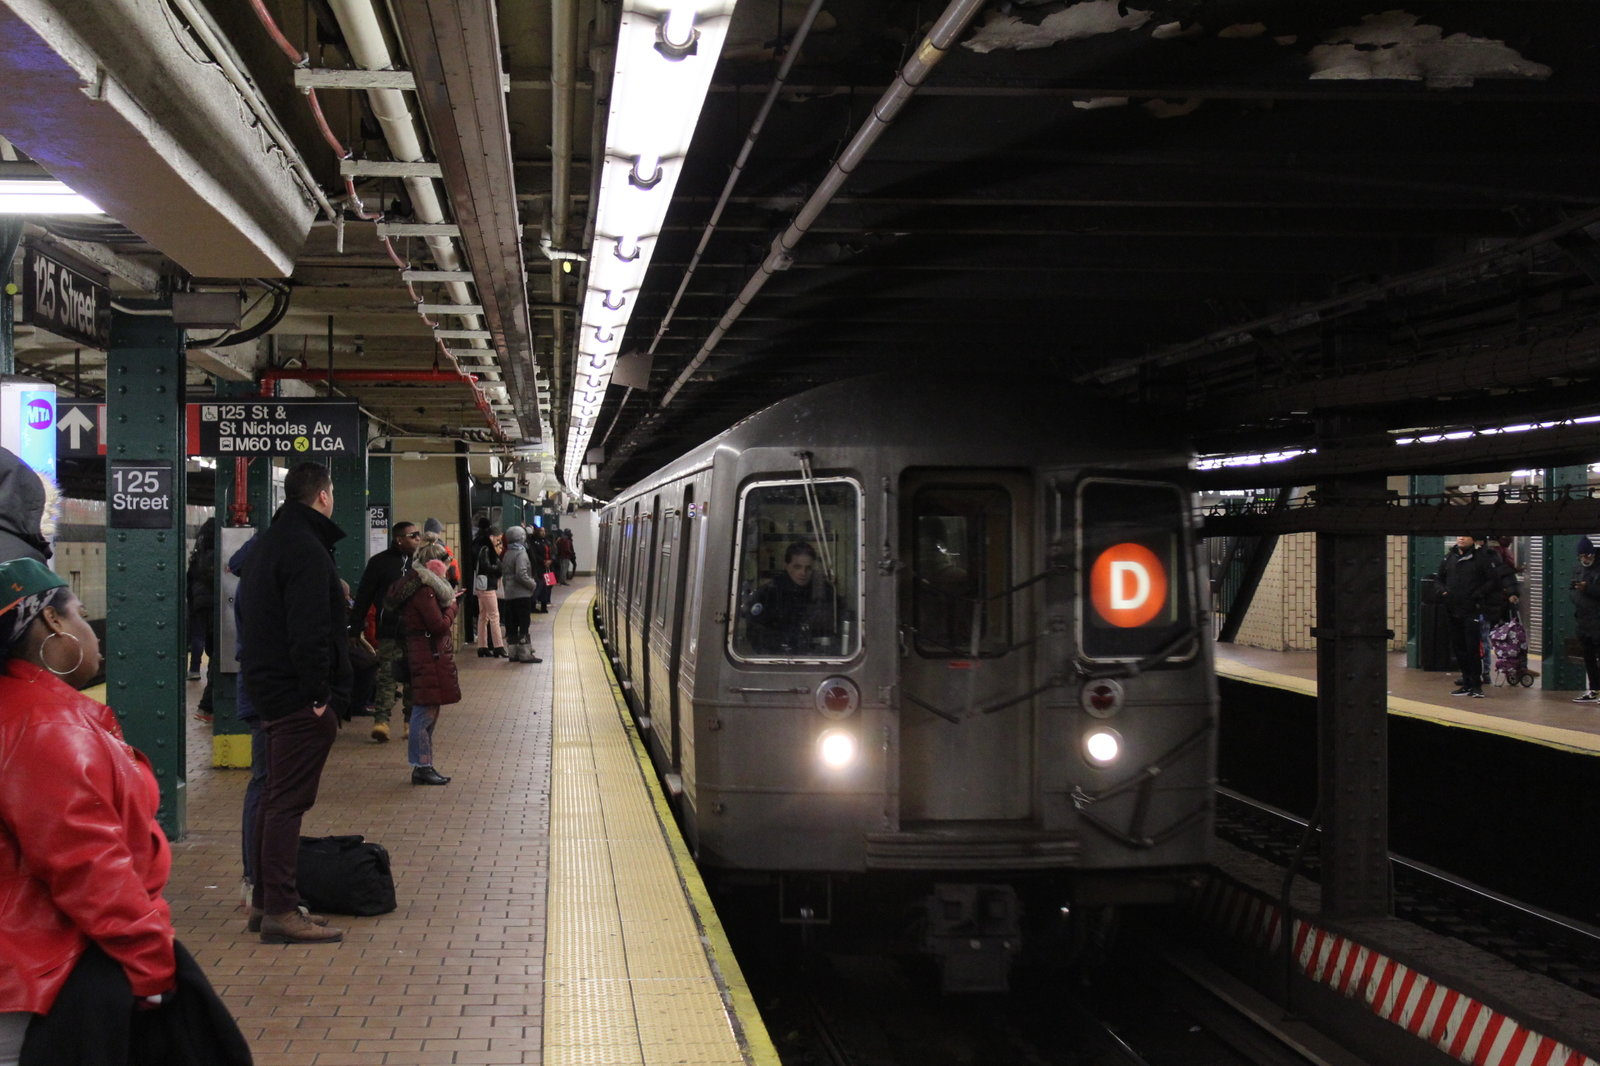 Brooklyn-bound (D) train arriving at 125th Street